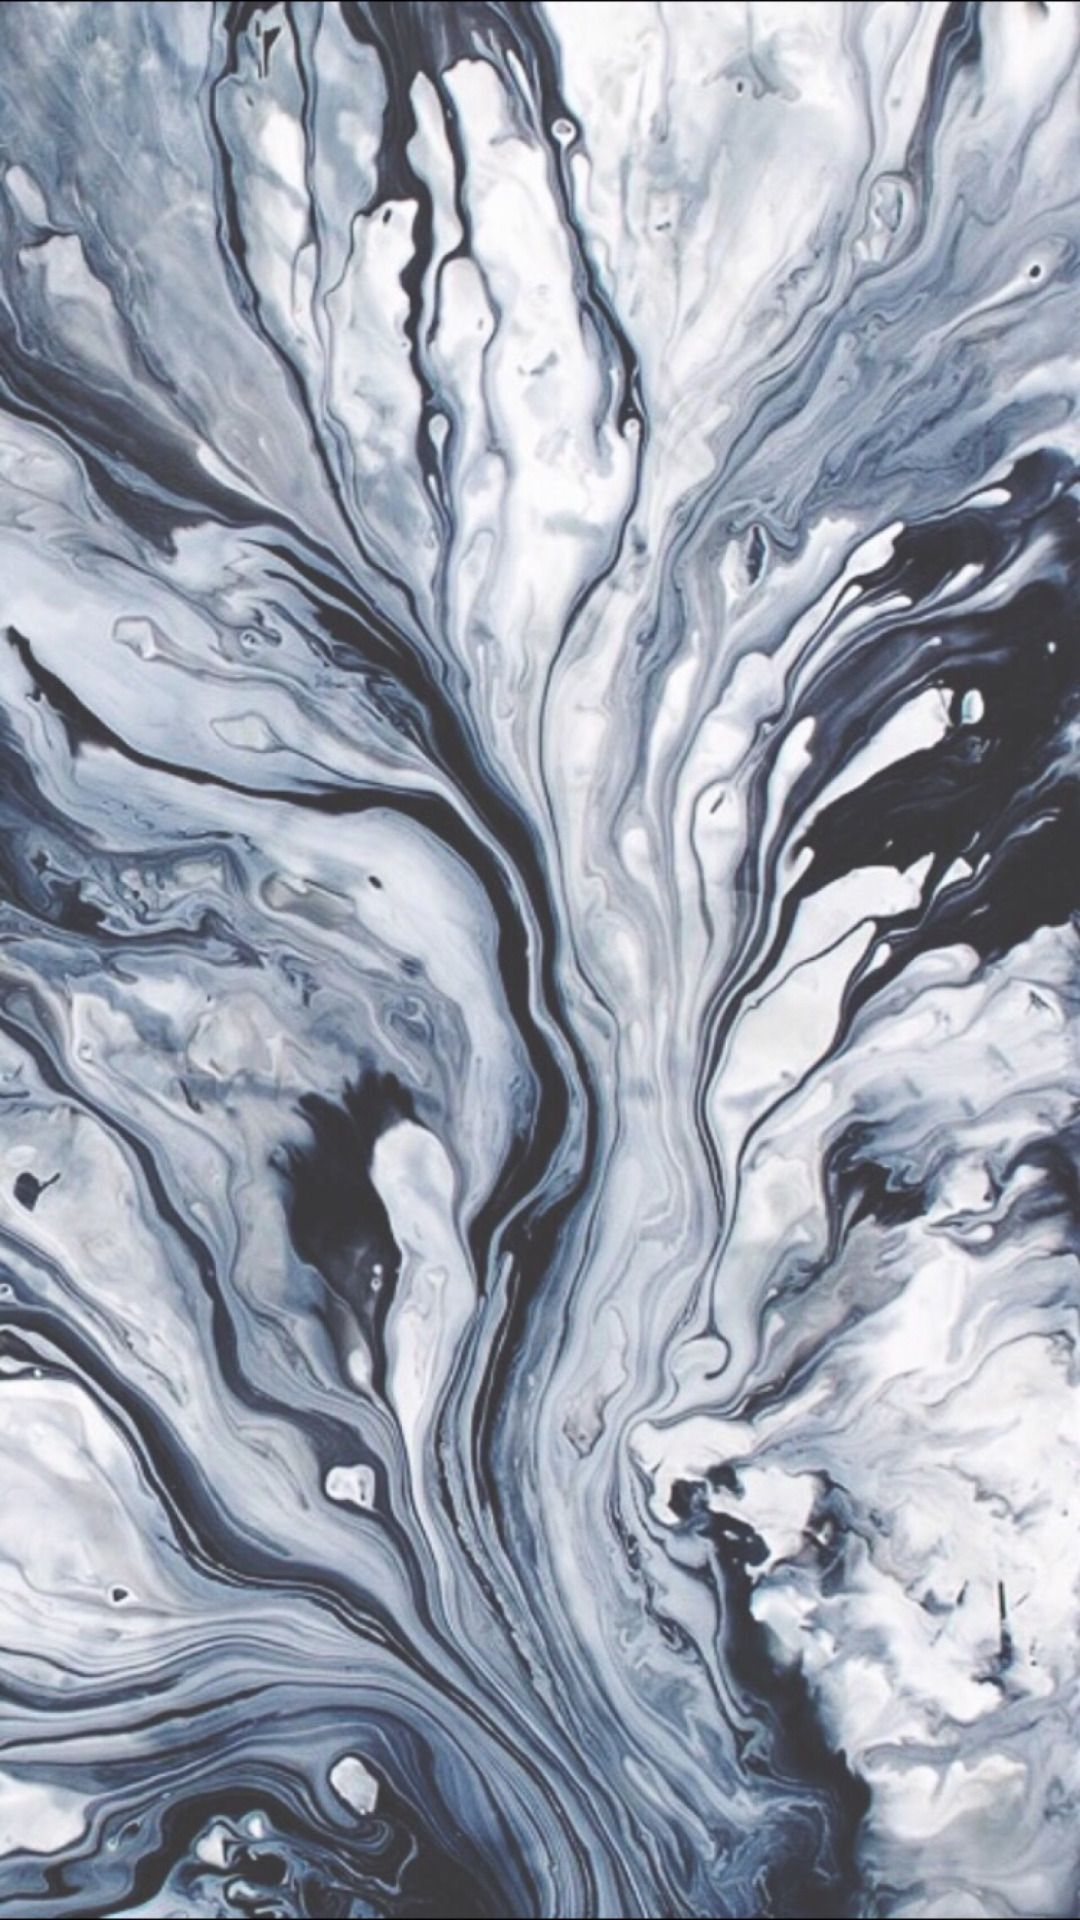 This Paint Spilled Is So Aesthetic Perfect For A Relaxing Background Aesthetic White Black And Blue Spill Tumblr Iphone Wallpaper Abstract Tumblr Wallpaper